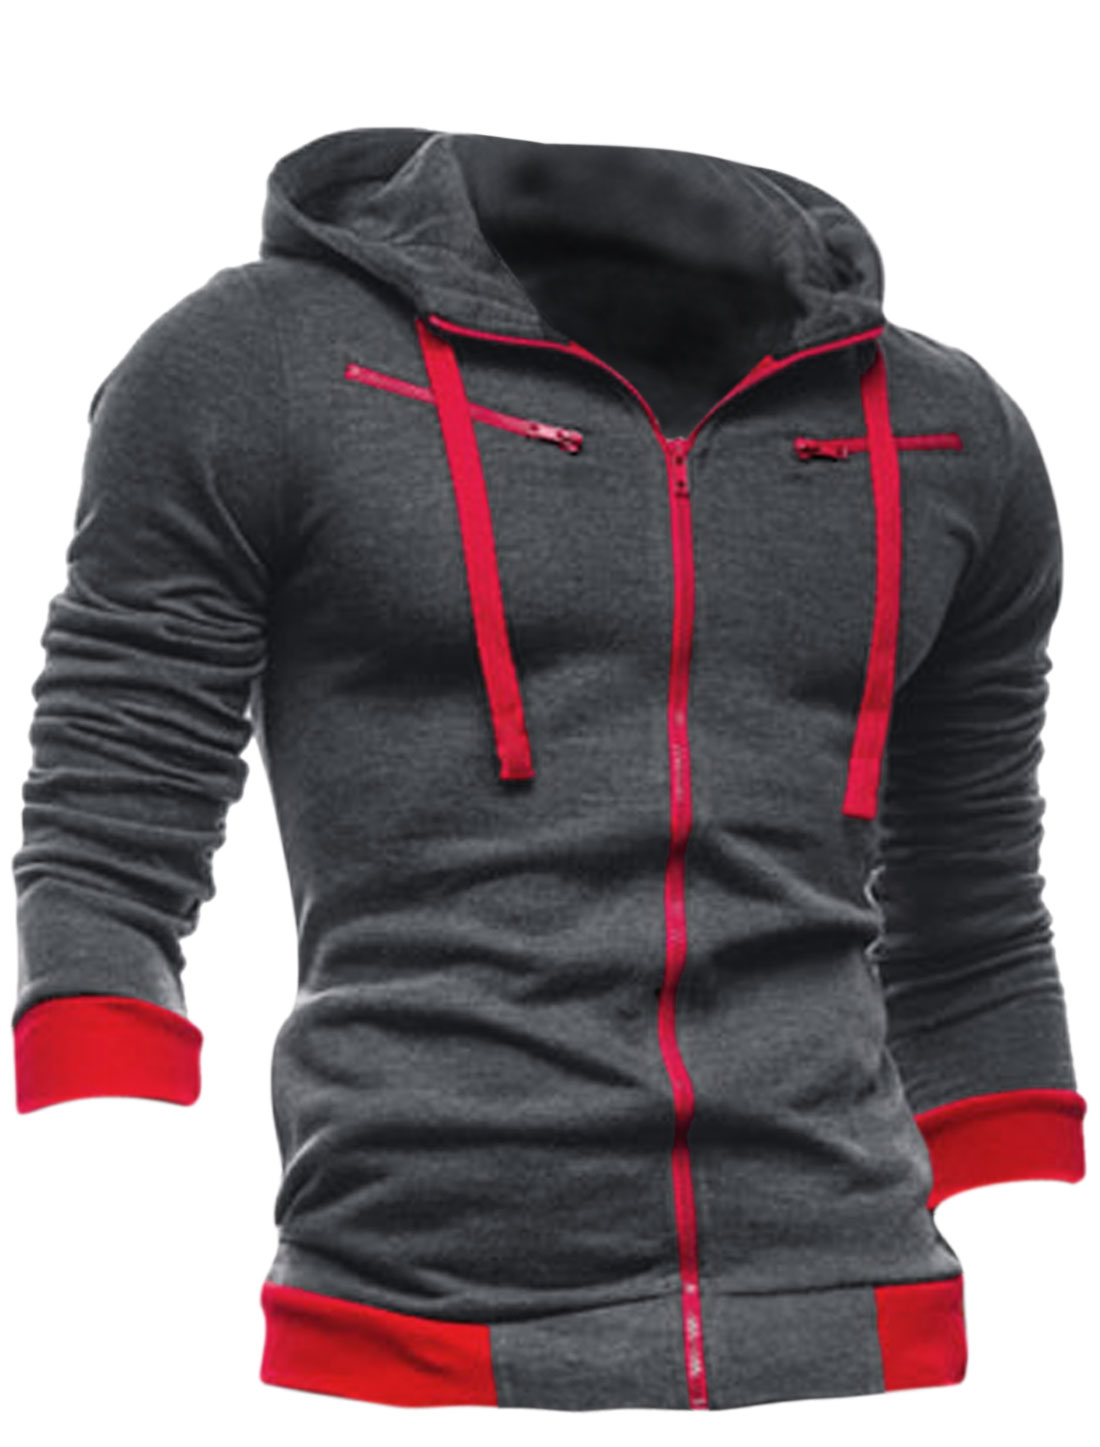 Men Full Zipper Closure Long Sleeve Fleece Inside Hoodie Sweatshirt Dark Gray M